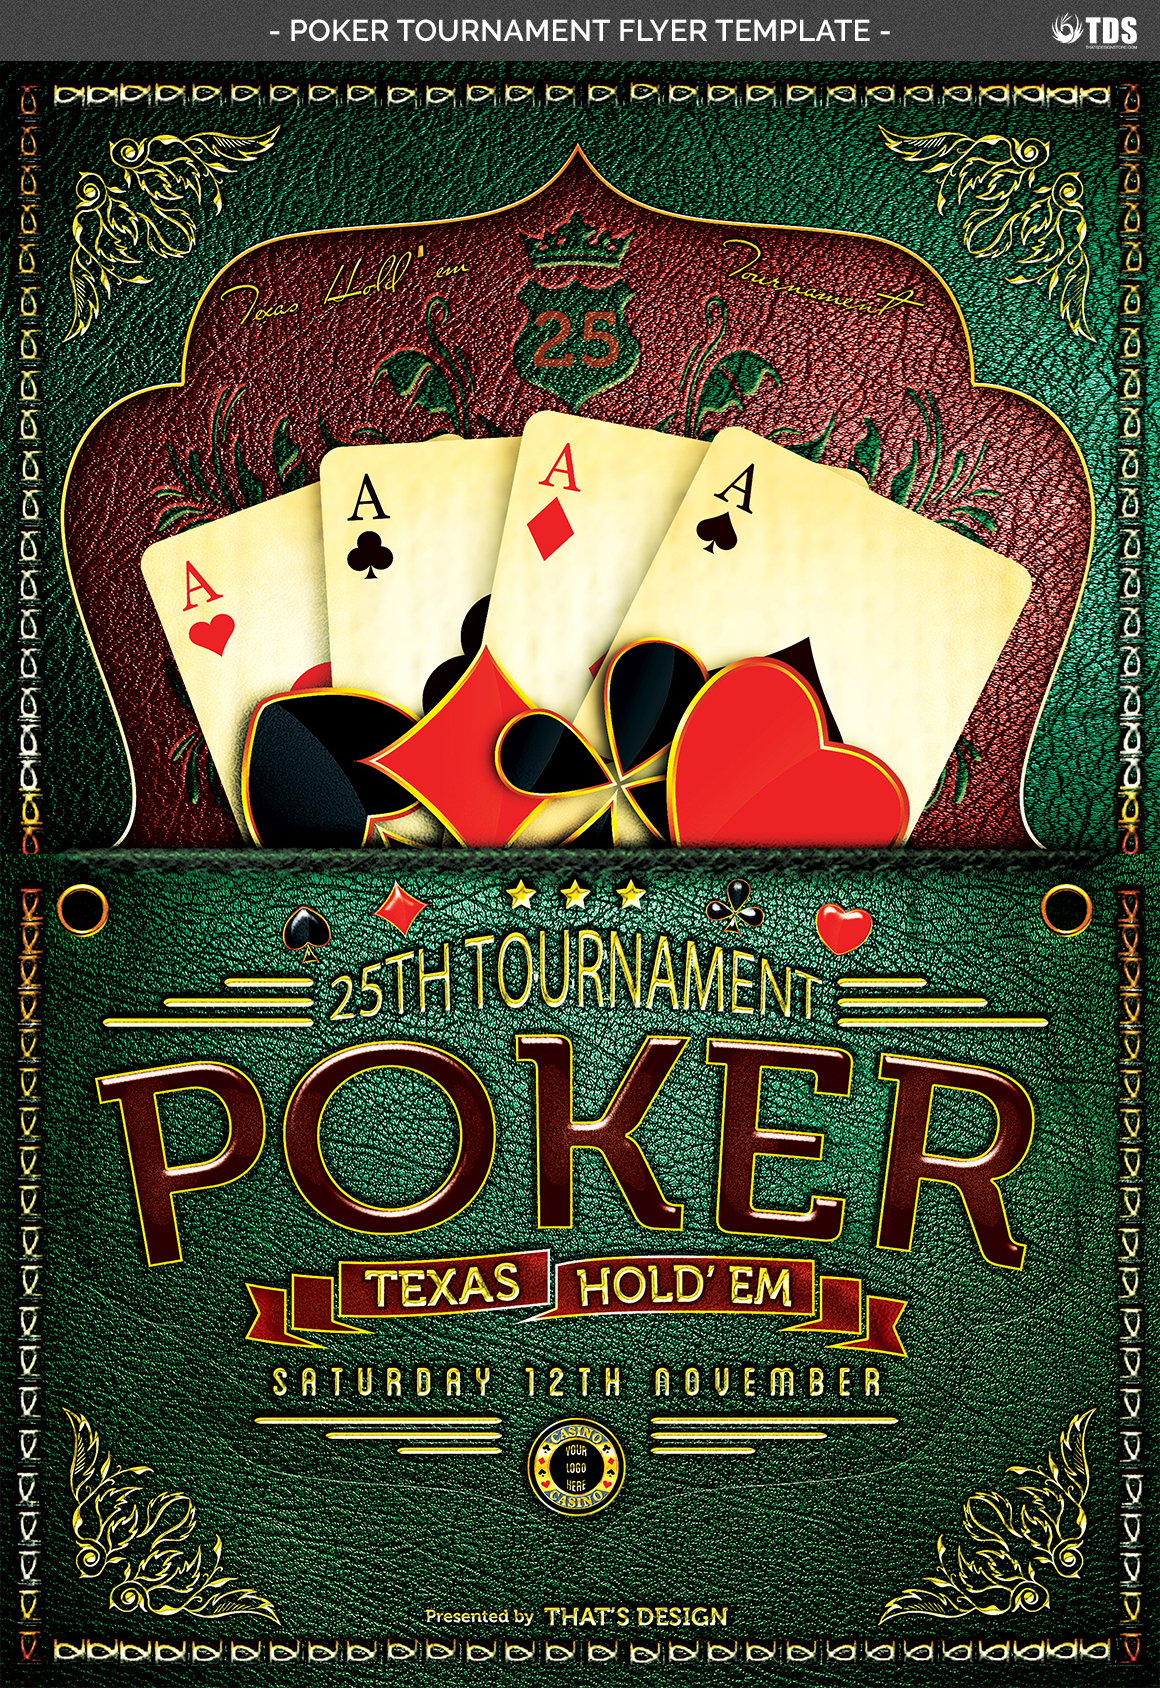 Poker Tournament Flyer Template example image 6